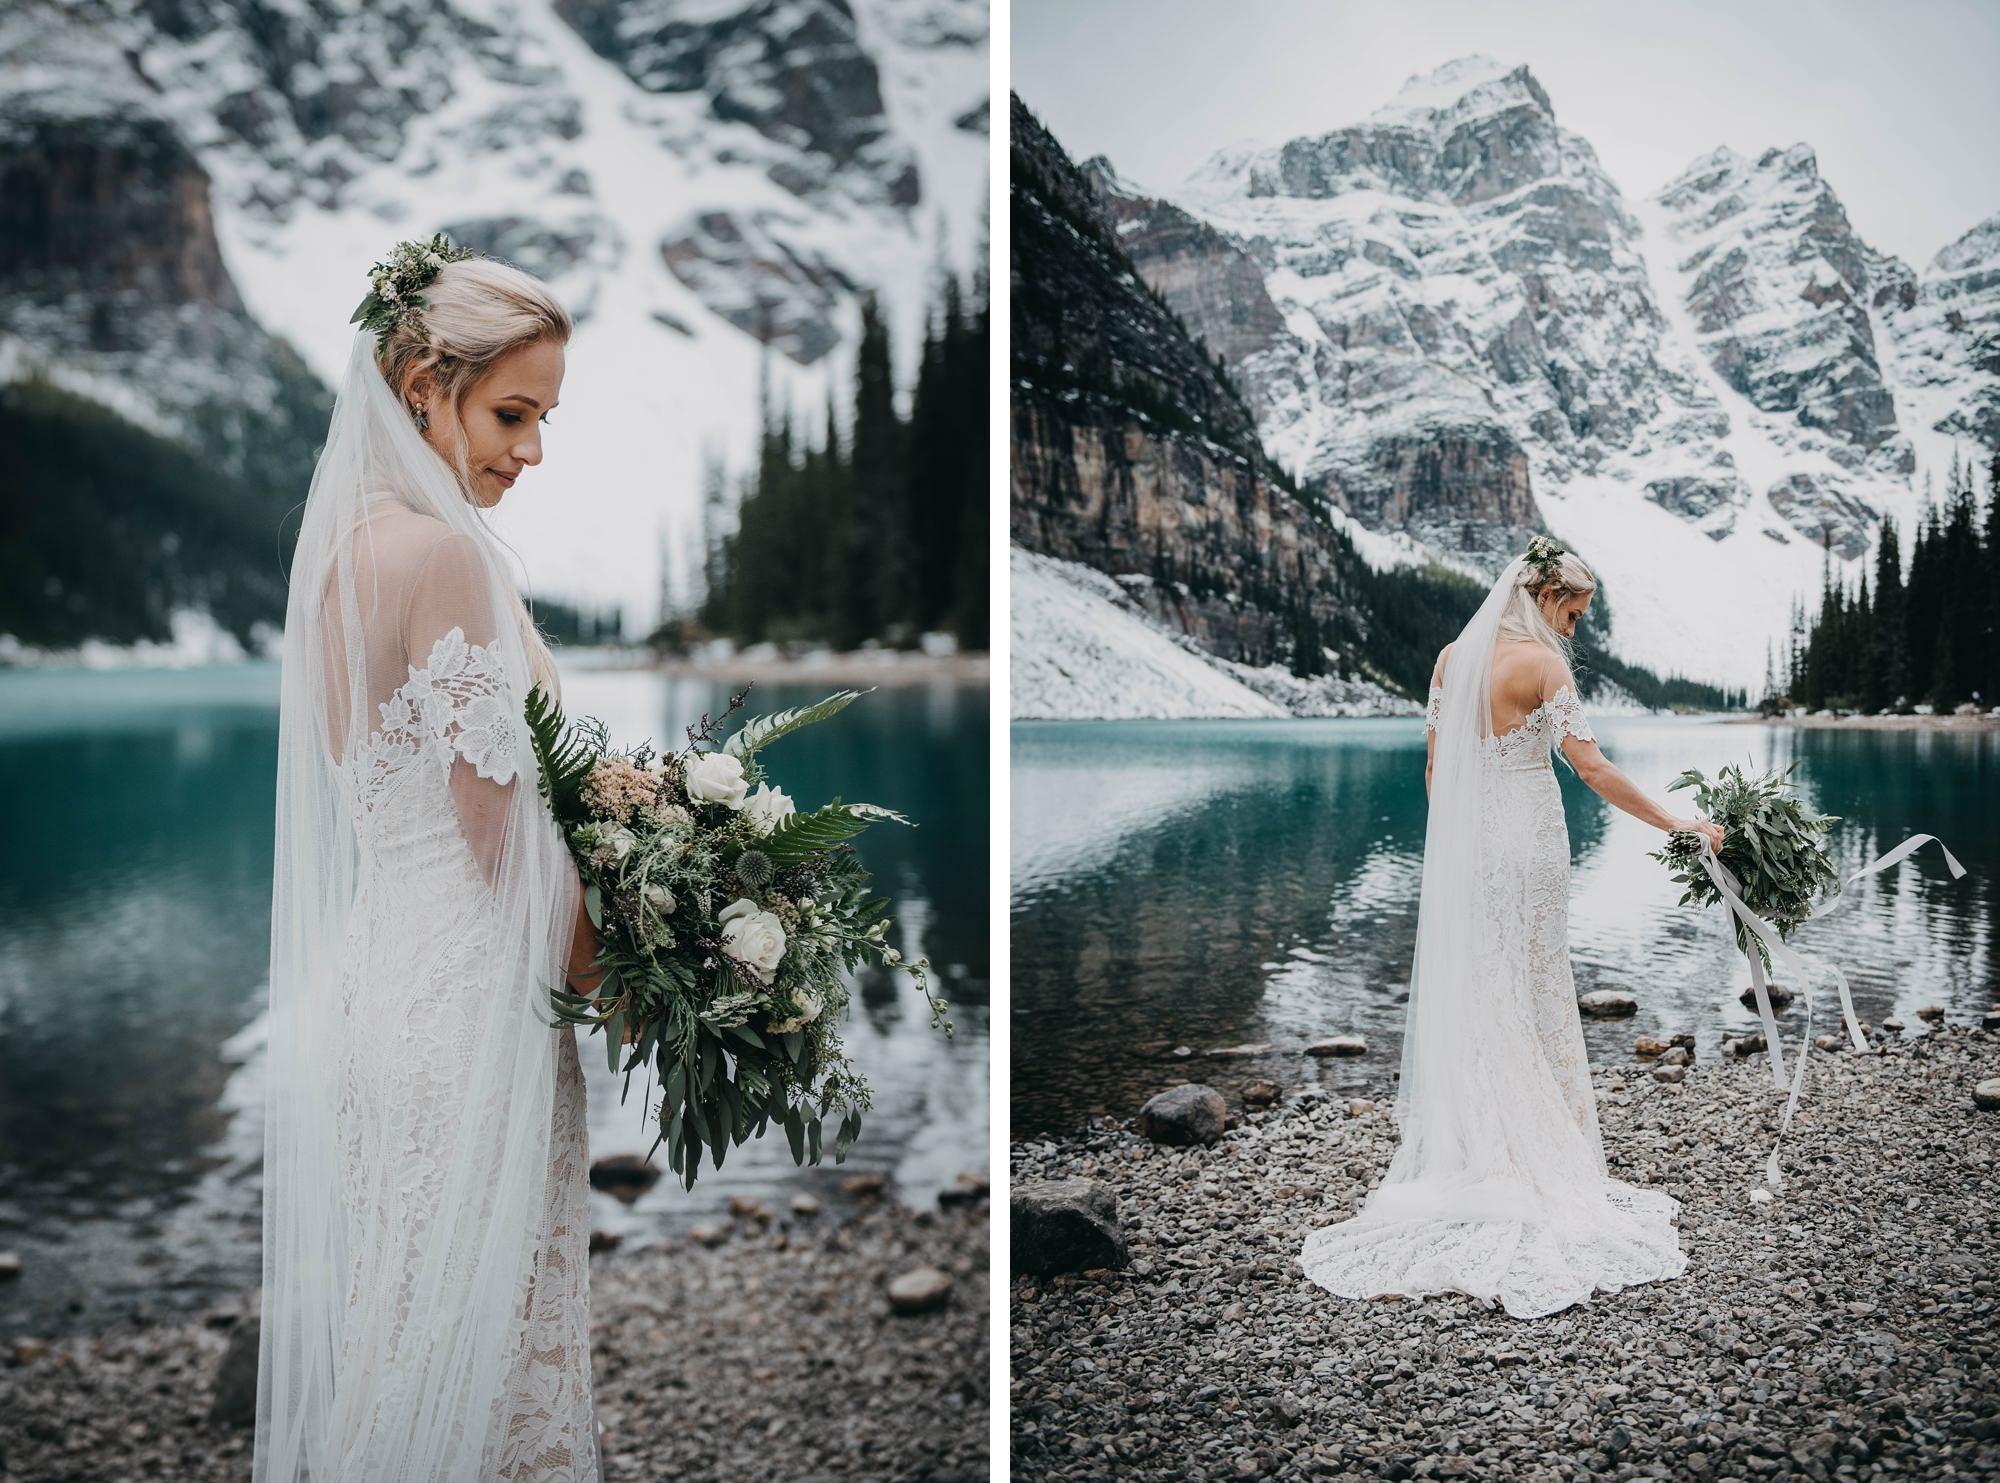 boho styled mountain elopement at moraine lake captured by destination wedding photographer Terry Photo Co.